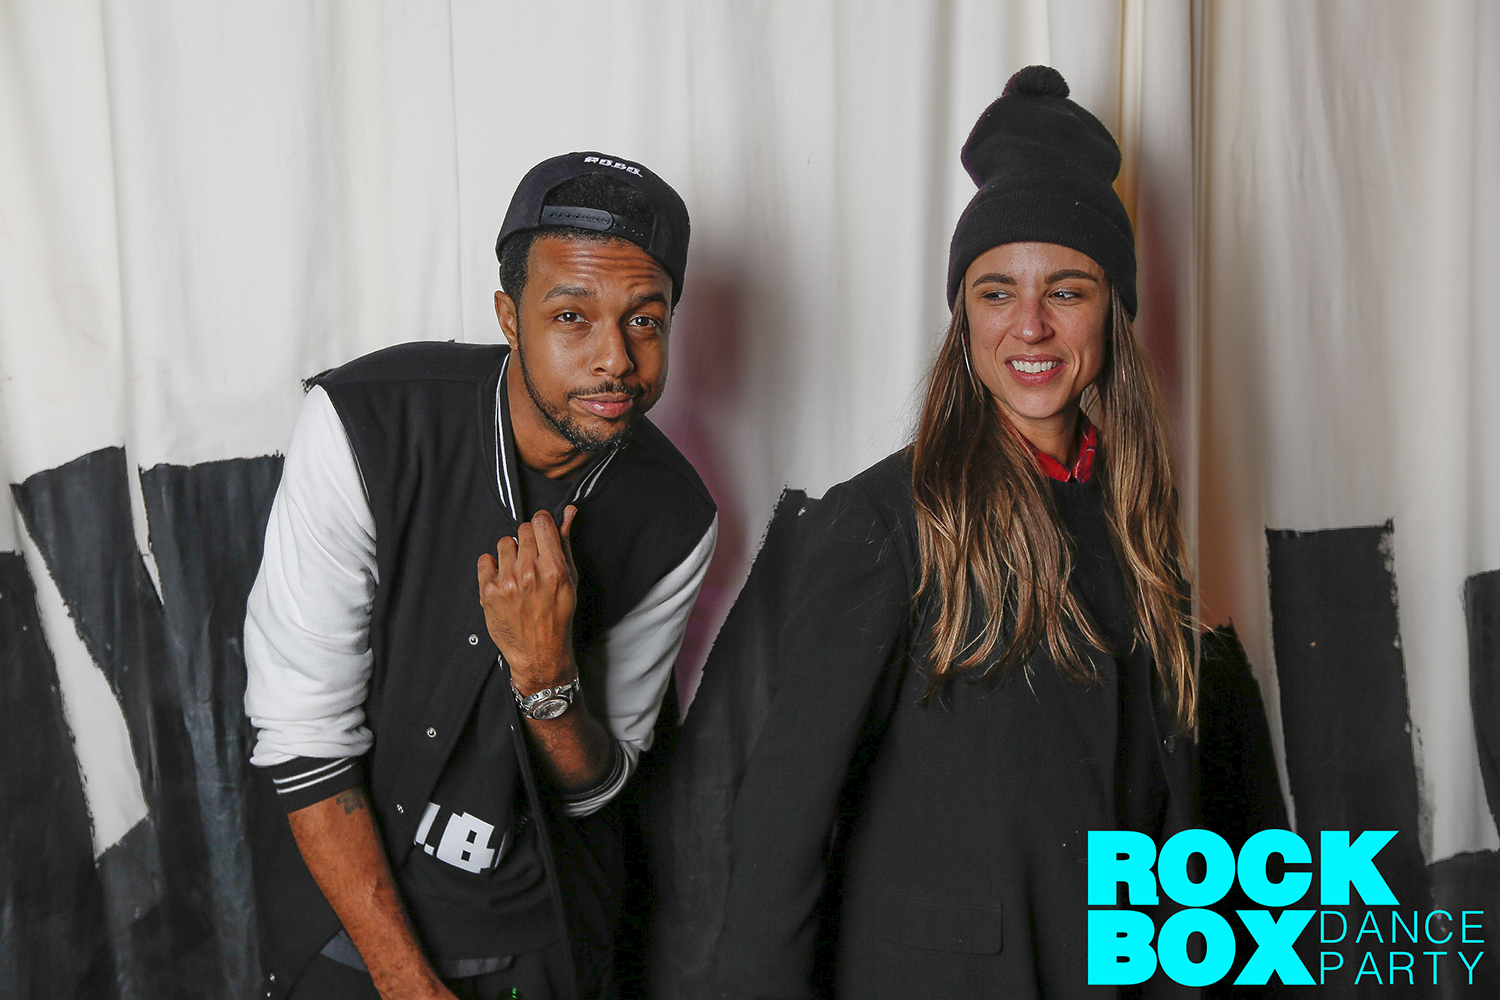 Rock box feb 2015-0150.jpg